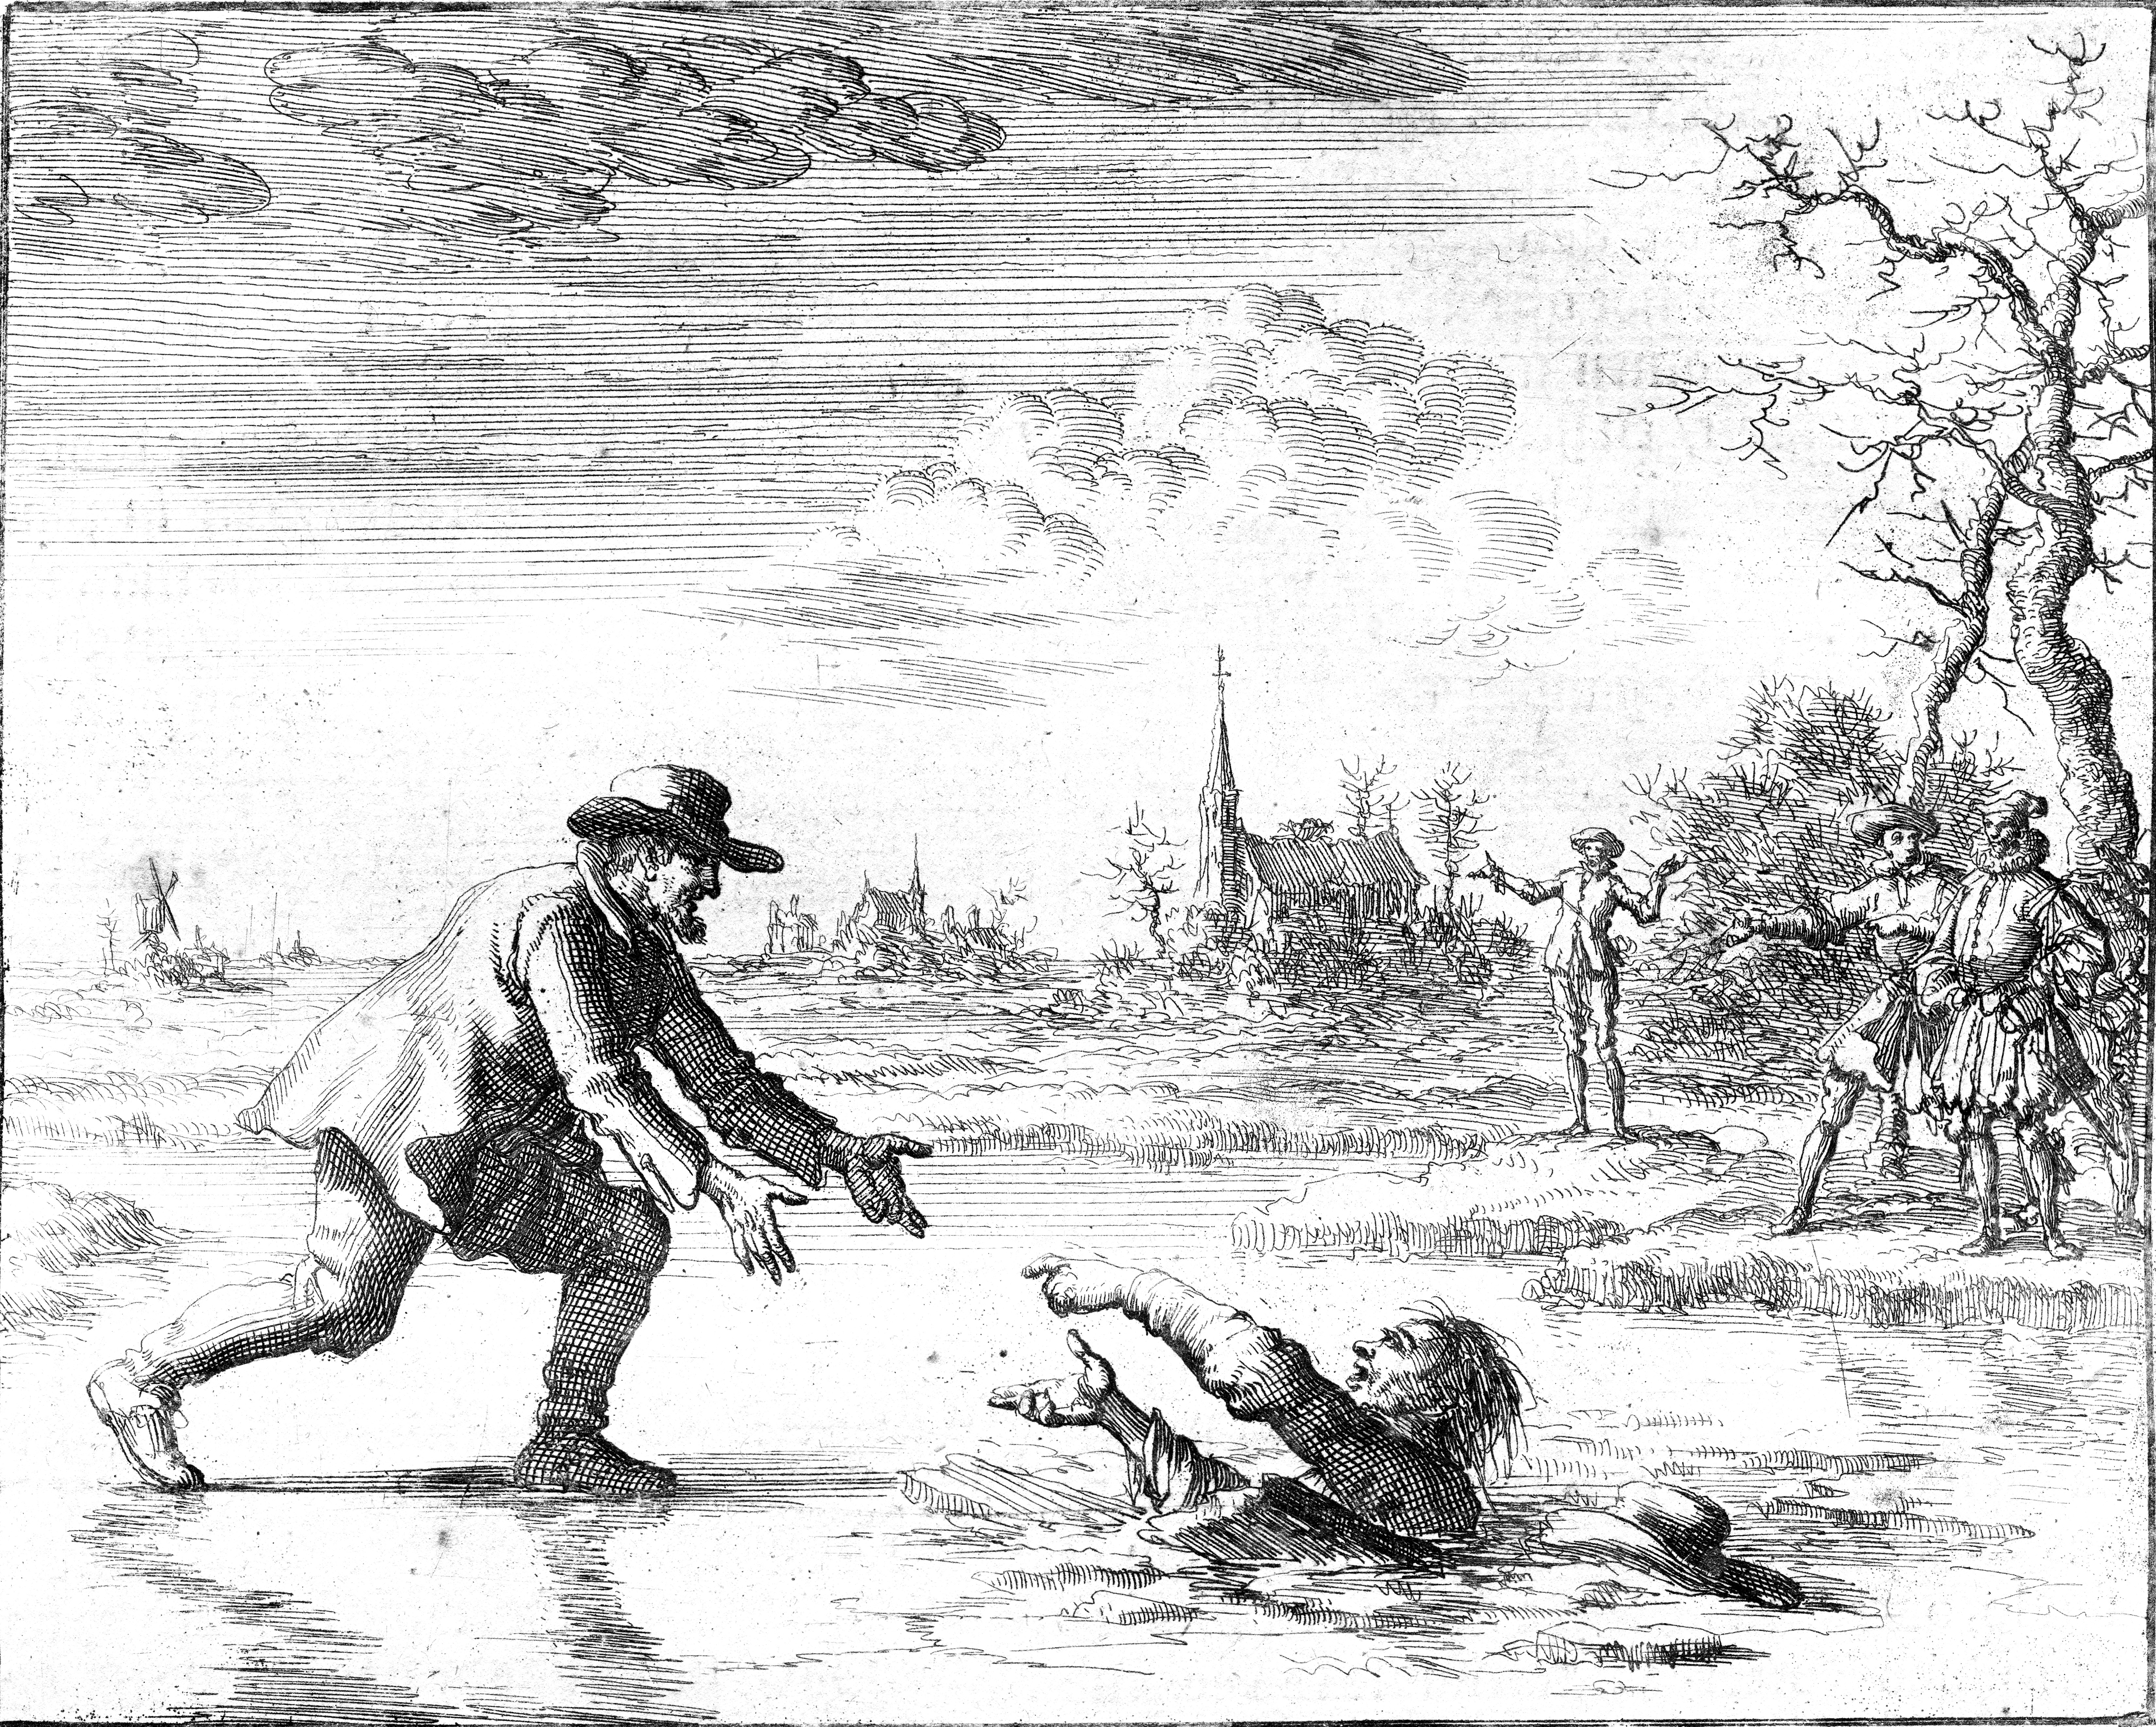 Anabaptist Dirk Willems rescues his pursuer an...